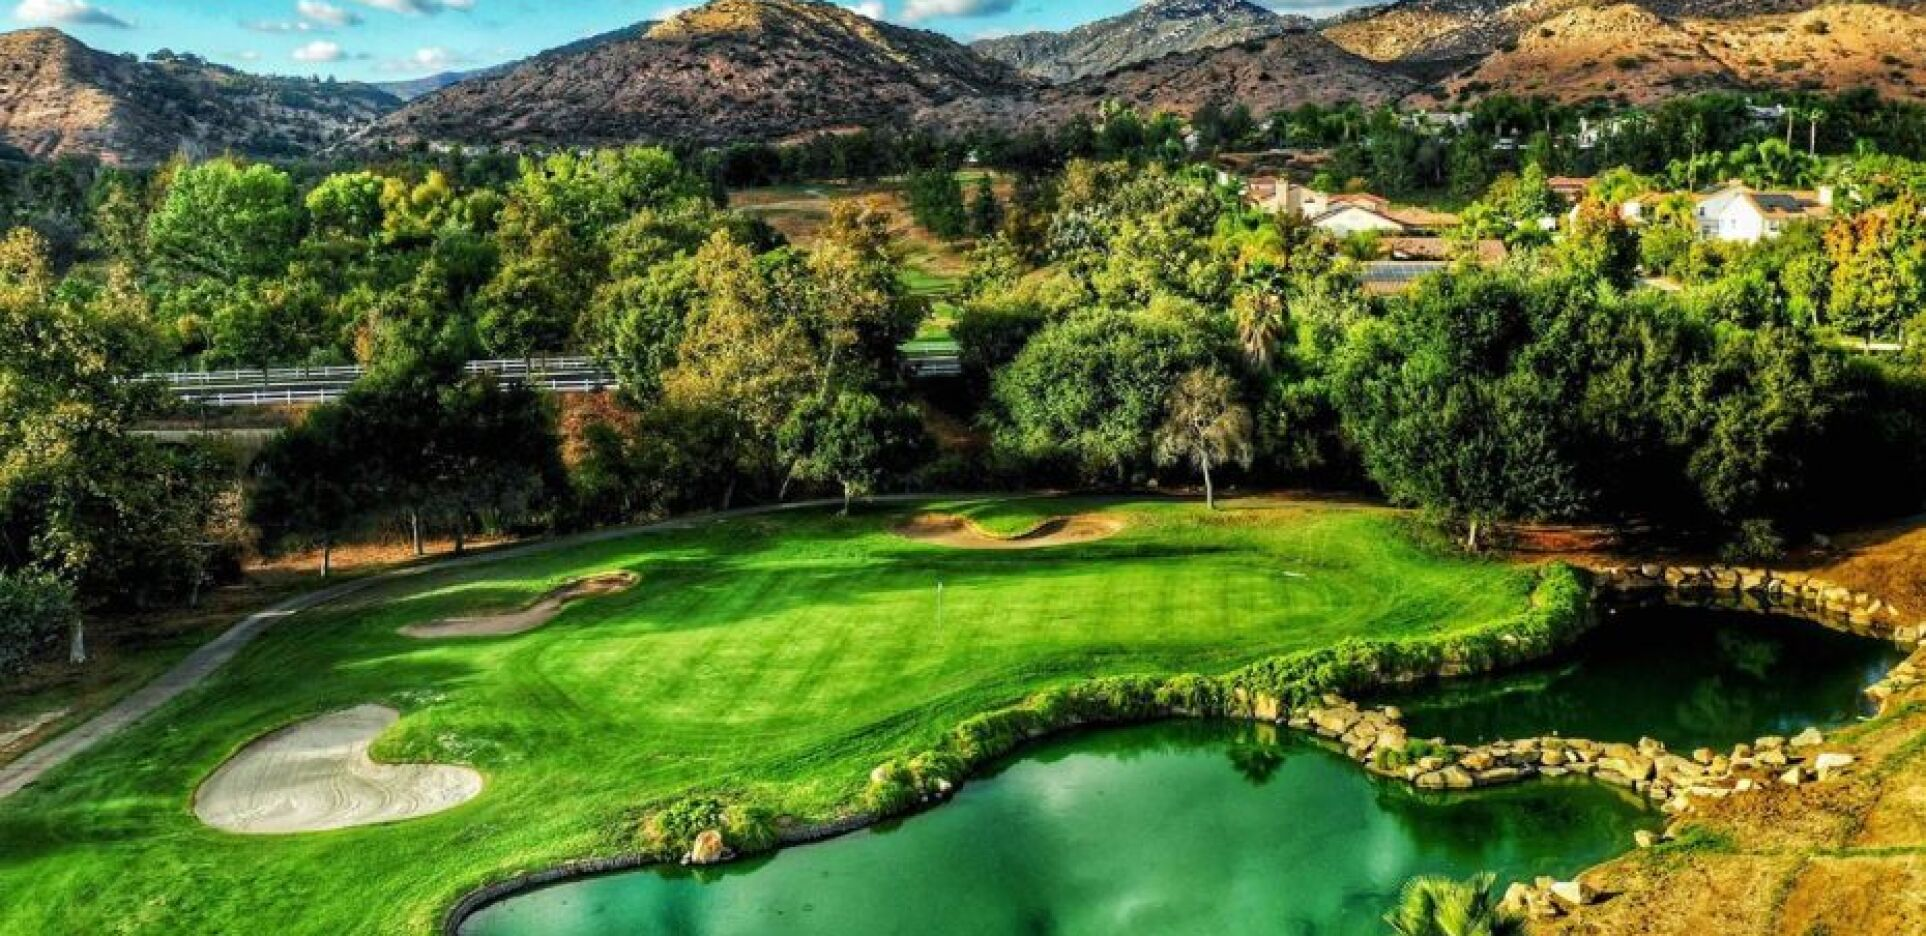 Eagle Crest Golf Club Hole 18  in Escondido, California